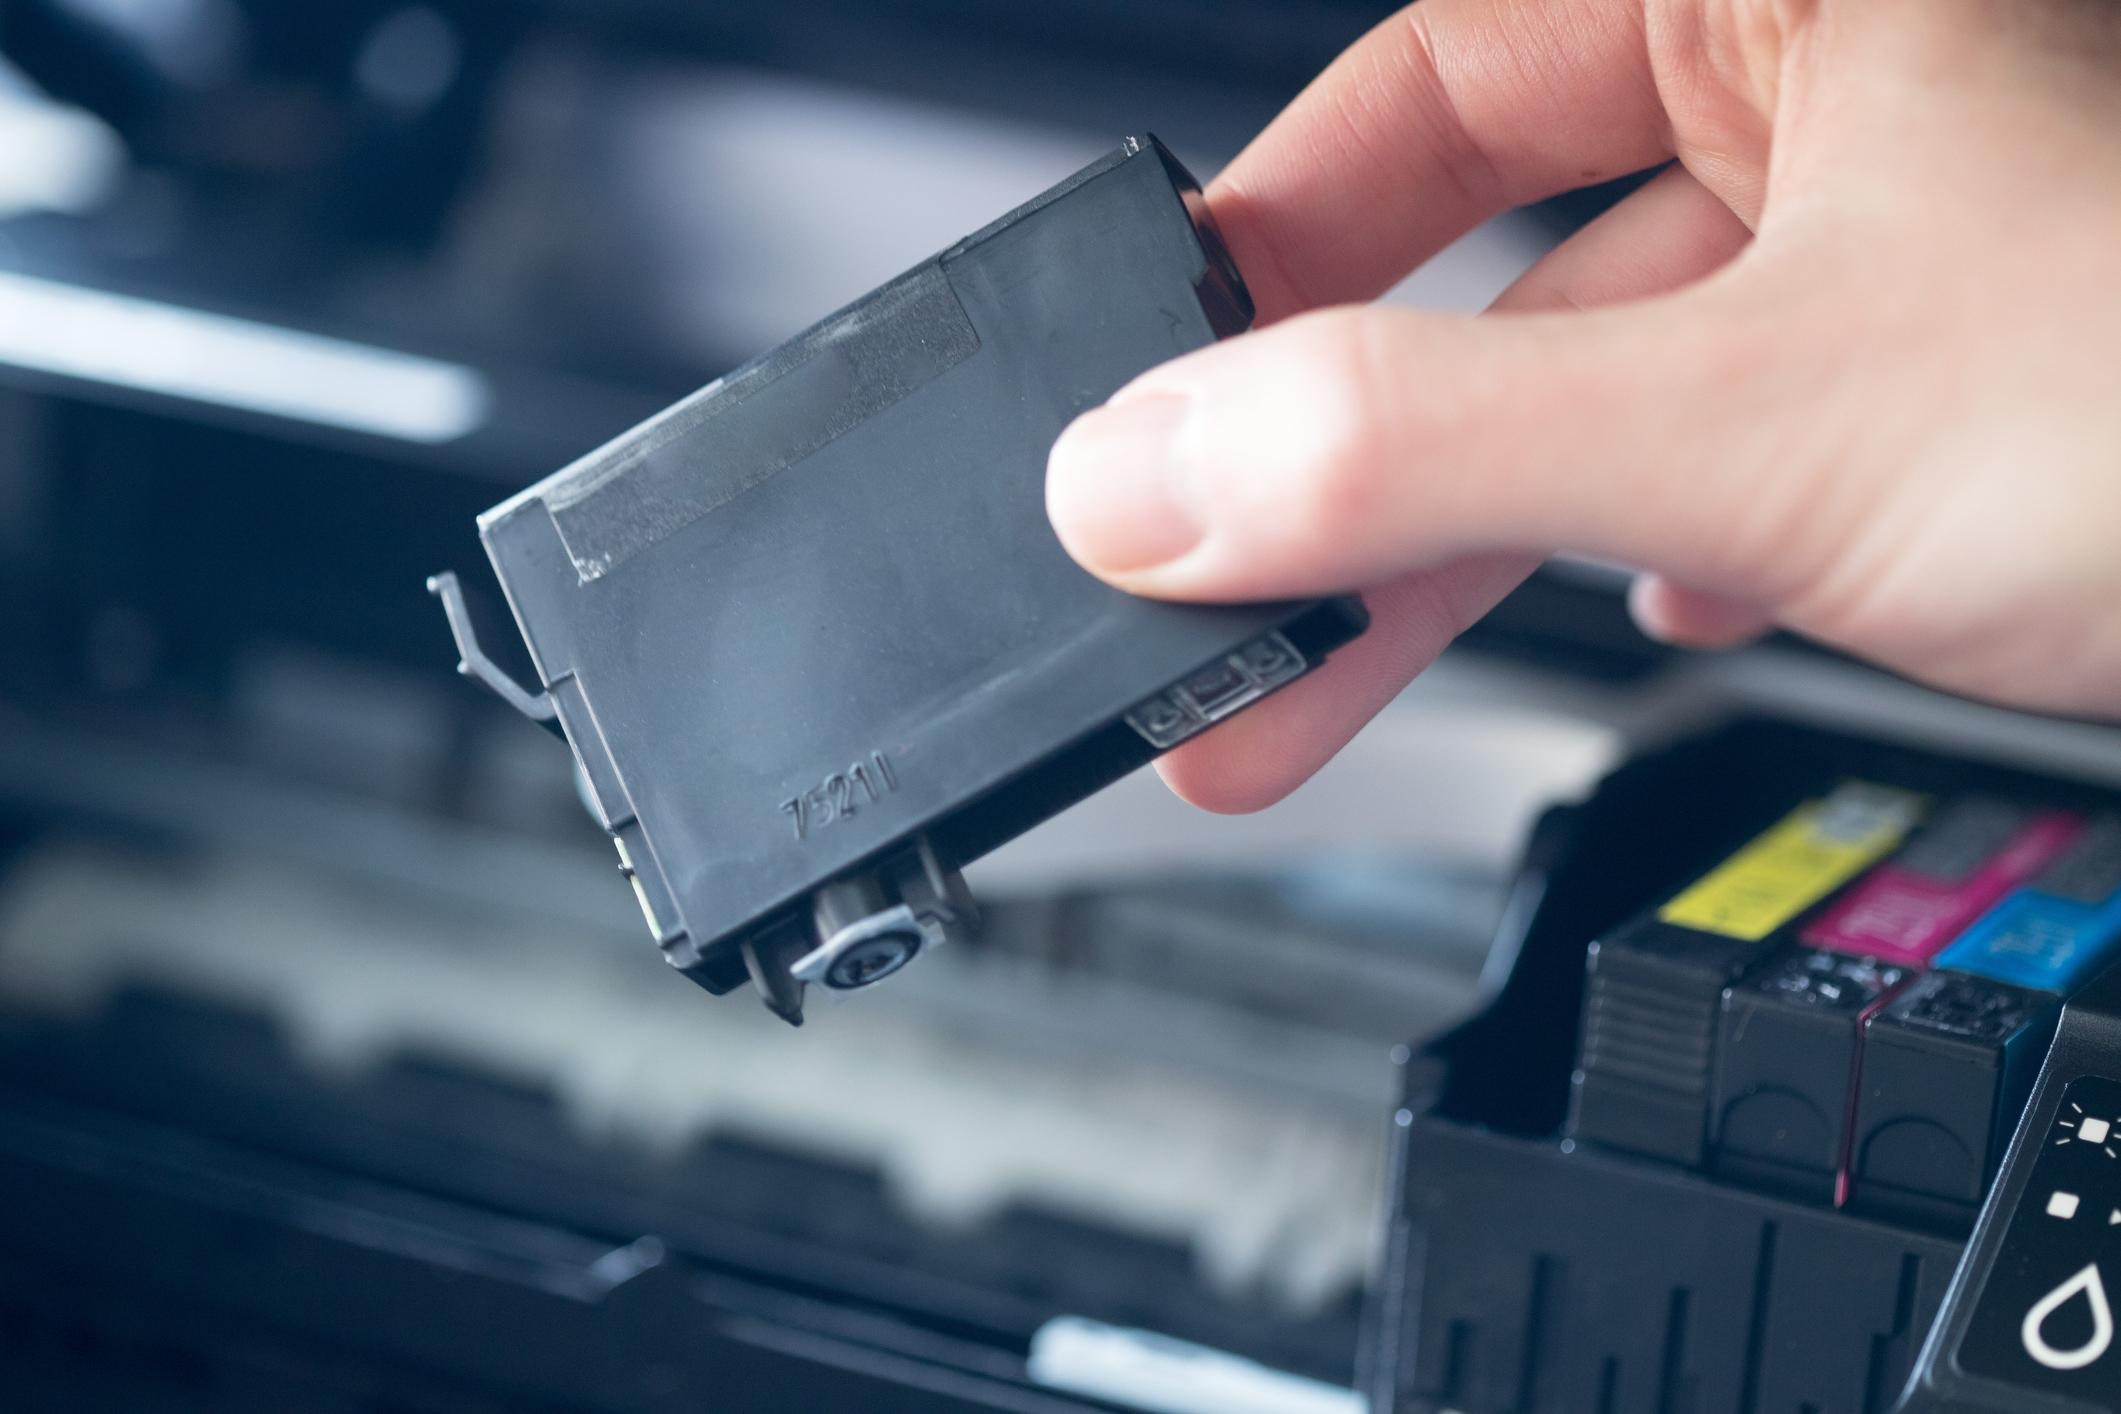 Different Types of Printer Cartridges